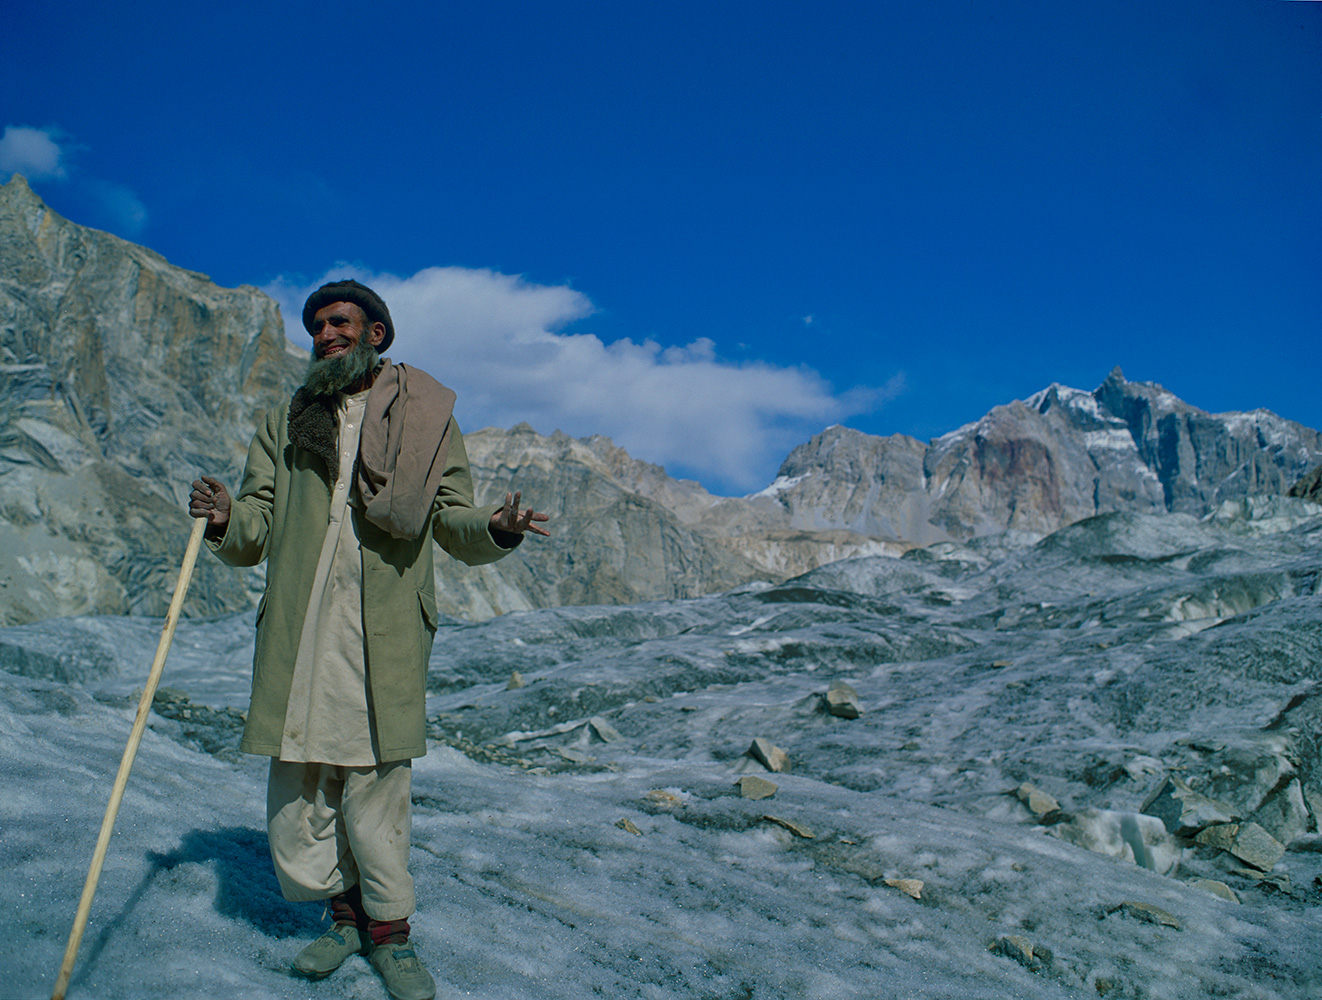 This man guided us across the glacier on my first trip to the area in 1992. Here, he is questioning the sanity of my companion, who was putting on his crampons!Bronica ETRSi, Fuji Velvia